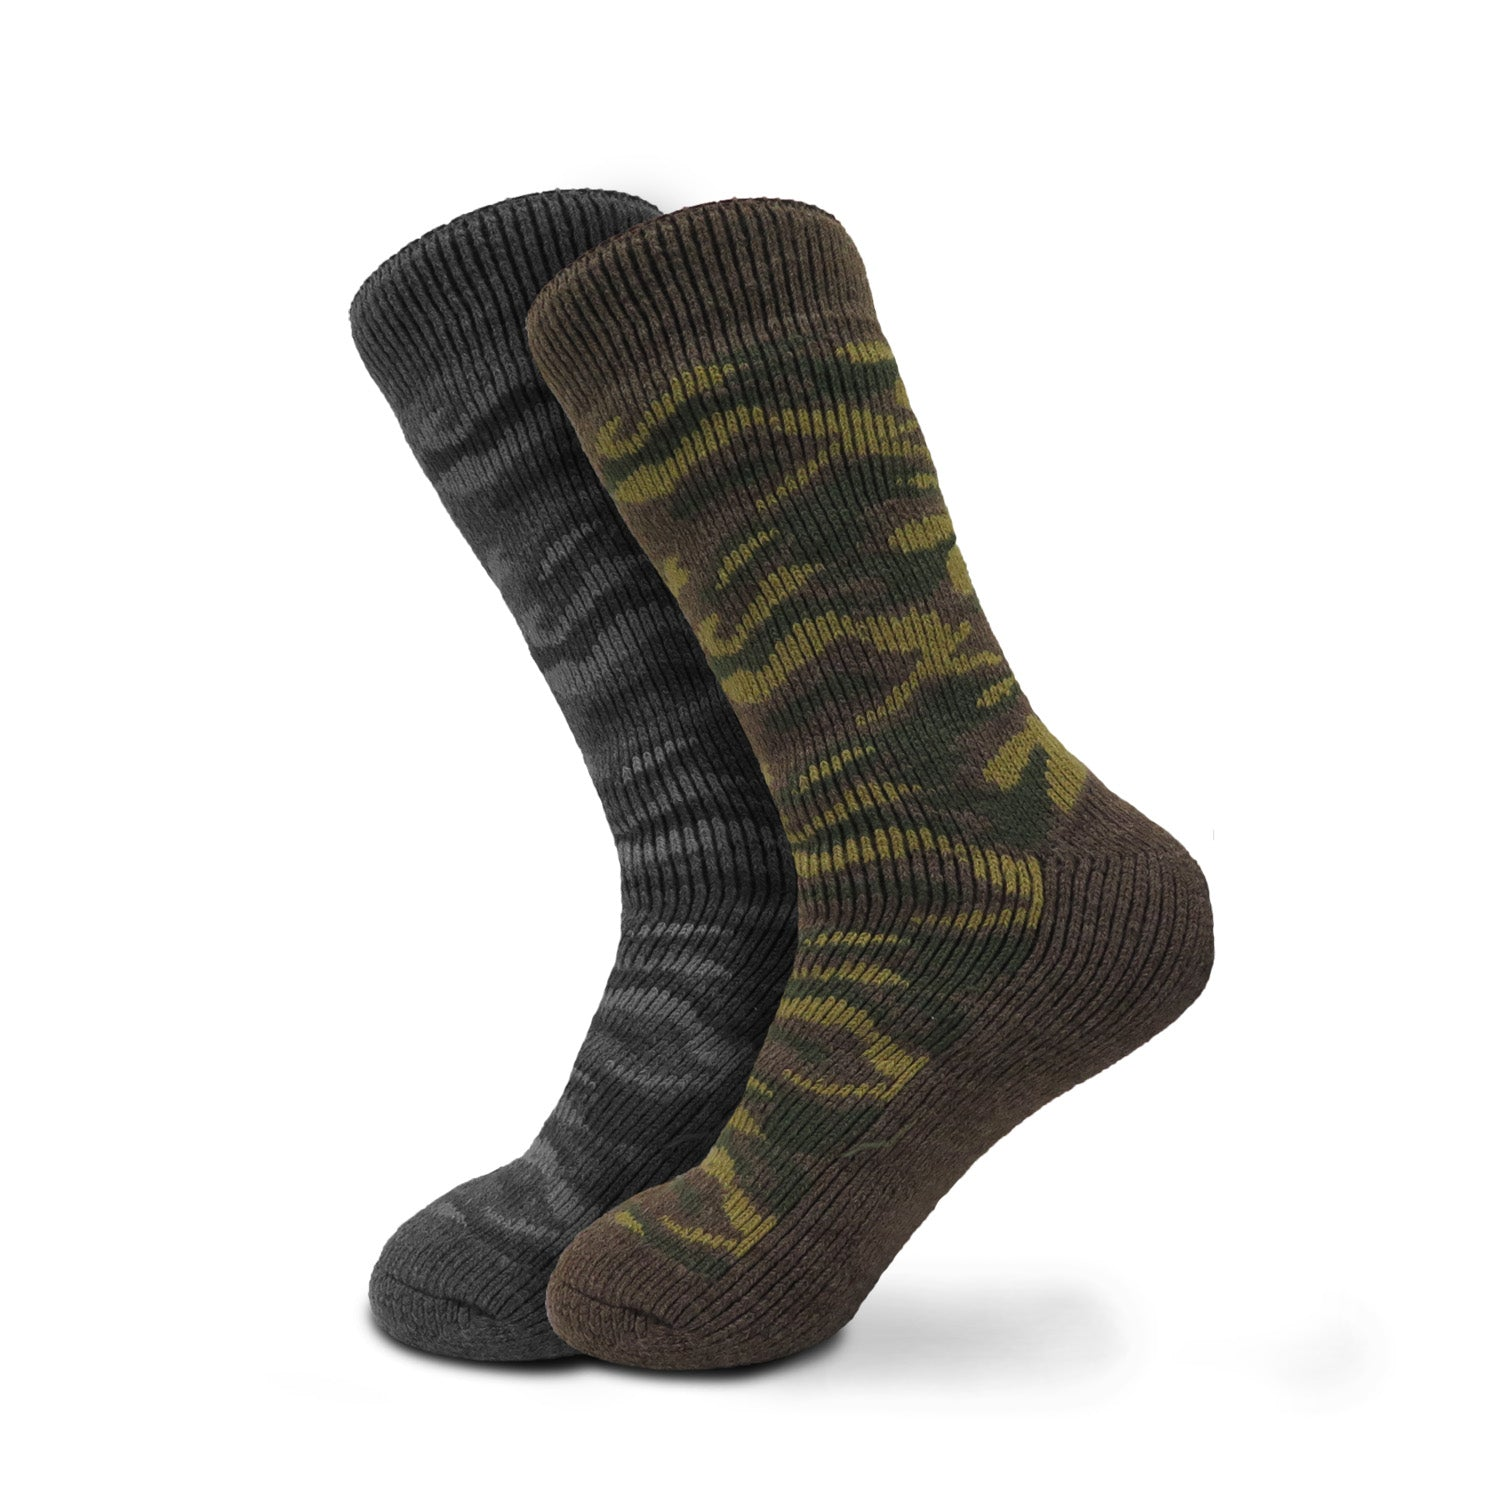 8b82677fe Men's Polar Extreme Super Warm Extra Heavy Thermal Acrylic Winter Socks  With Patterns